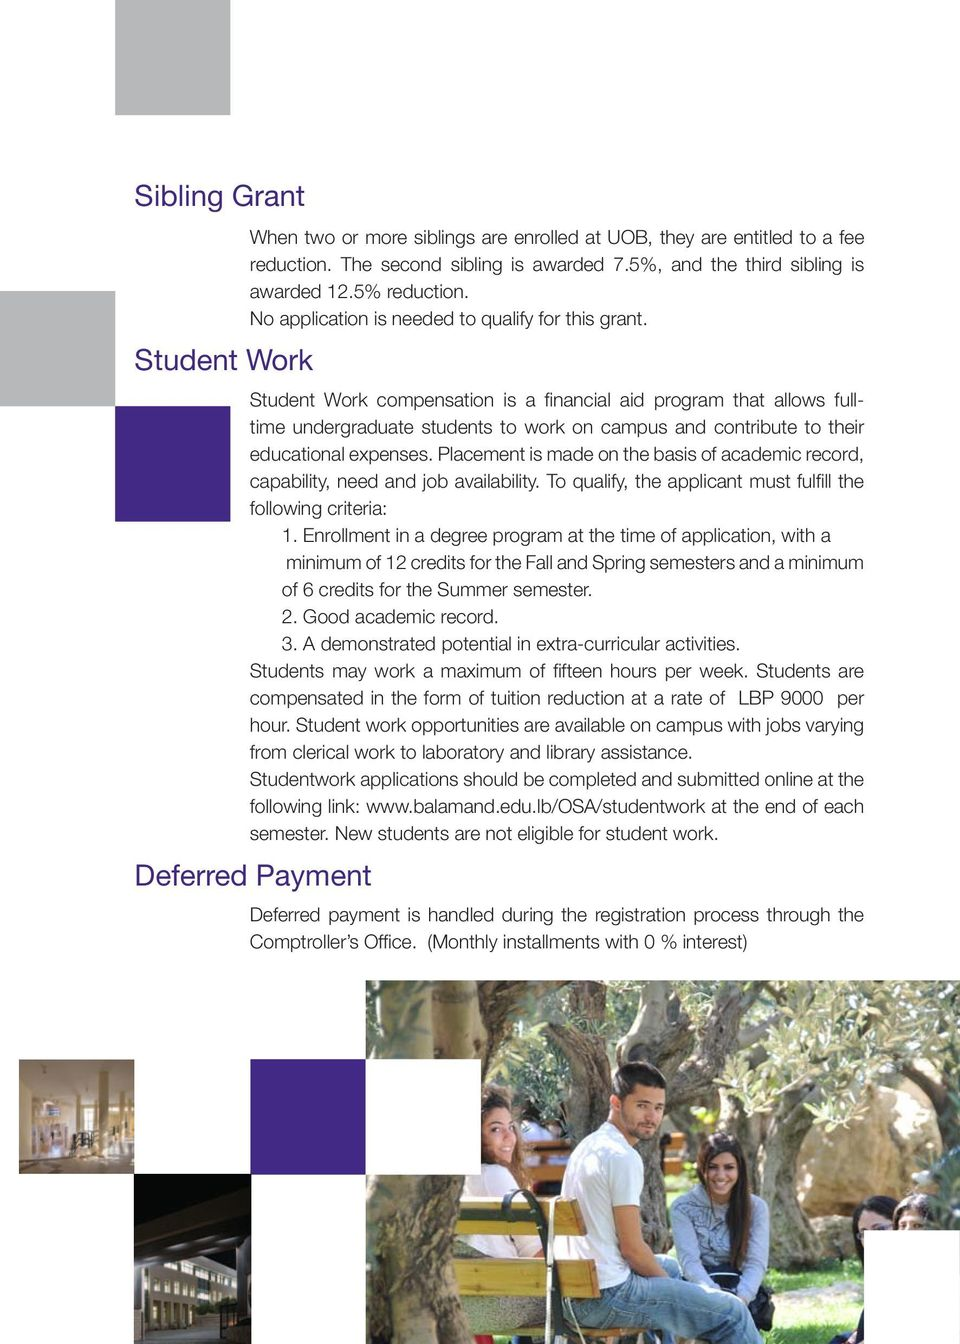 Student Work compensation is a financial aid program that allows fulltime undergraduate students to work on campus and contribute to their educational expenses.